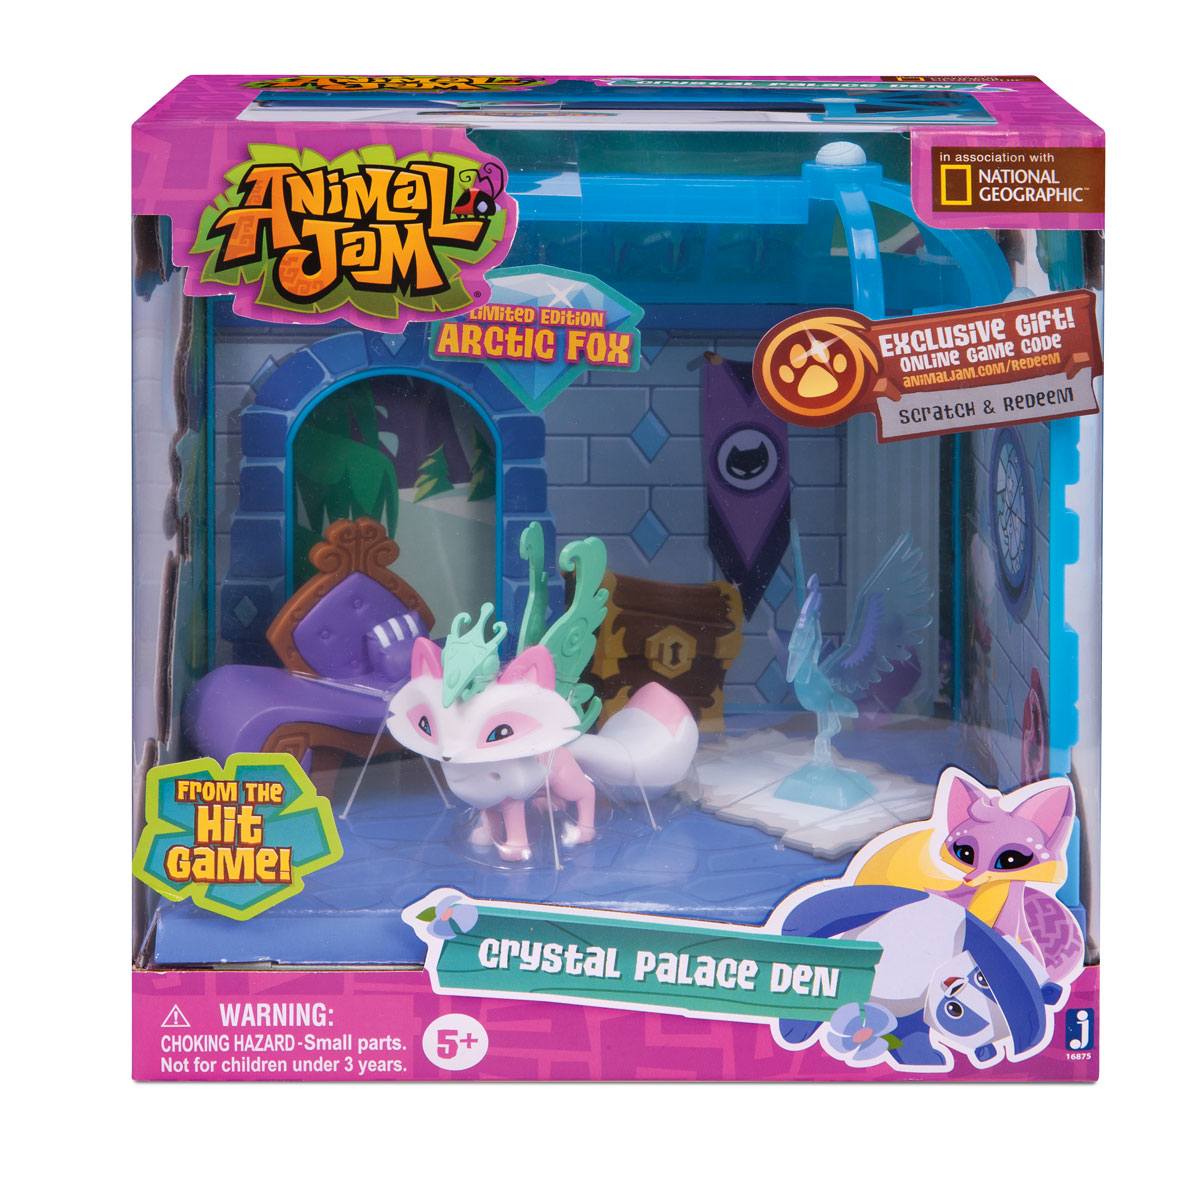 Mar 10,  · Free Game Codes & Cards for Animal Jam. We offer several kinds of different Animal Jam gift certificates and game cards here at codermadys.ml We probably have to purchase more animal jam membership cards and codes than anyone else in the world because of how many of our users redeem them! So whether you're looking for membership 5/5.